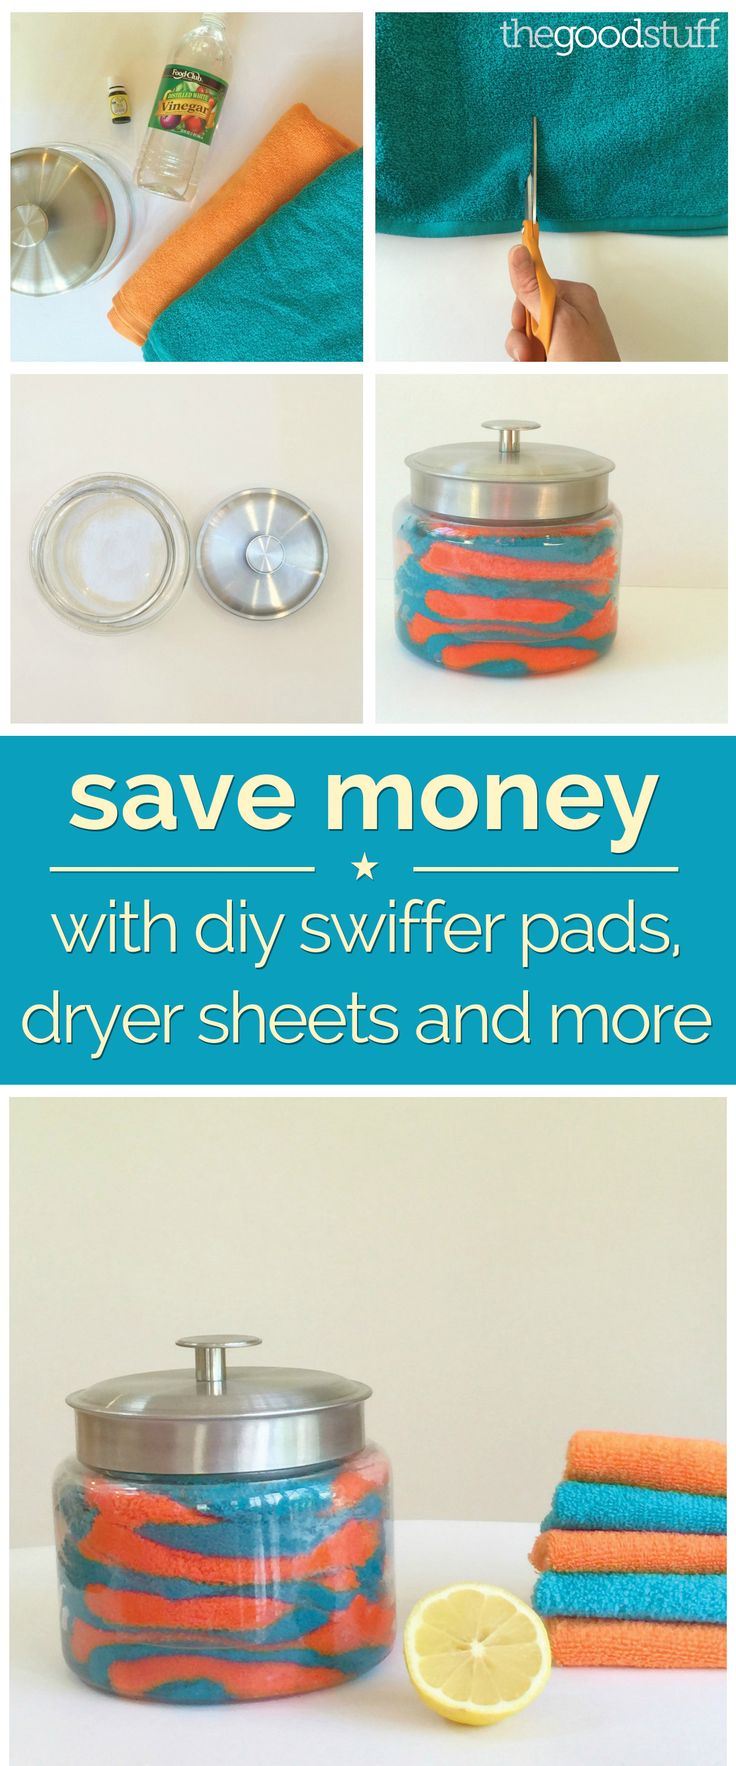 Save Money With DIY Swiffer Pads, Dryer Sheets and More - thegoodstuff